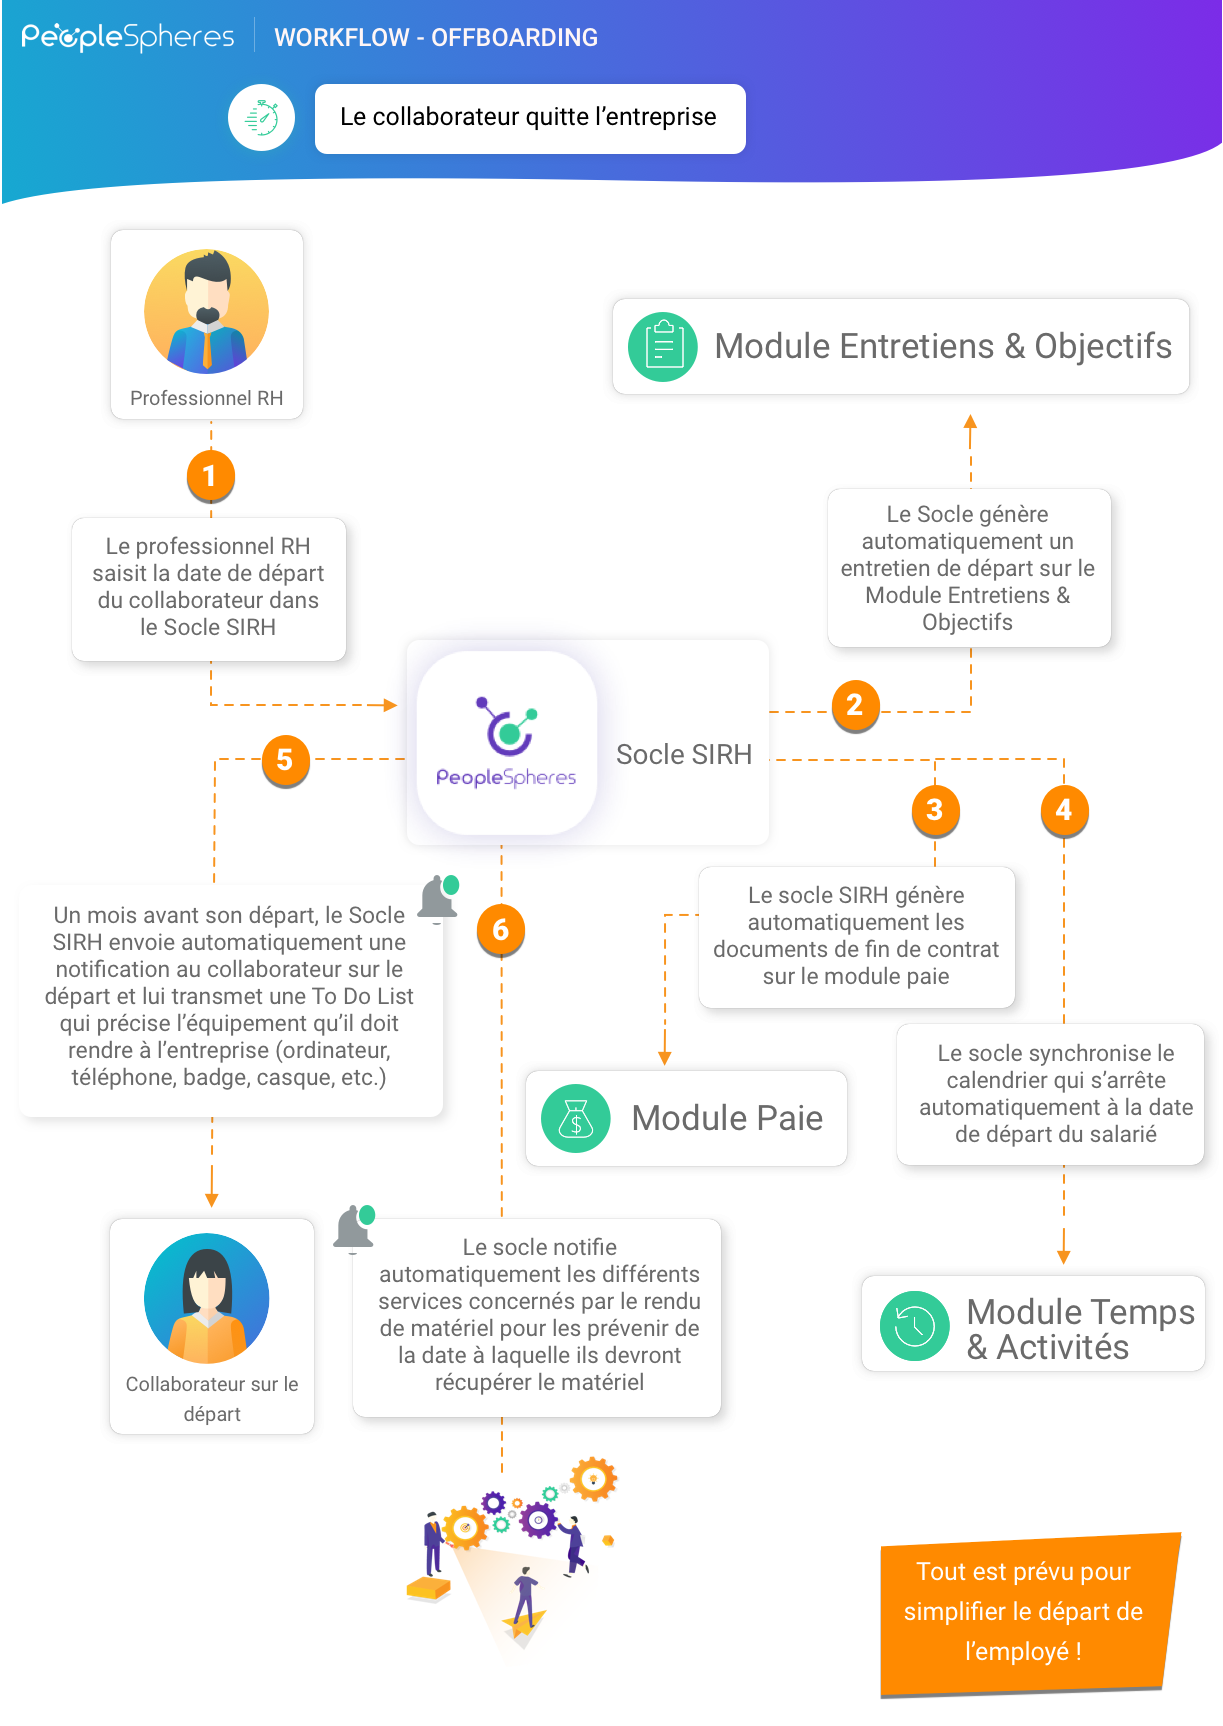 Workflow - infographie Offboarding